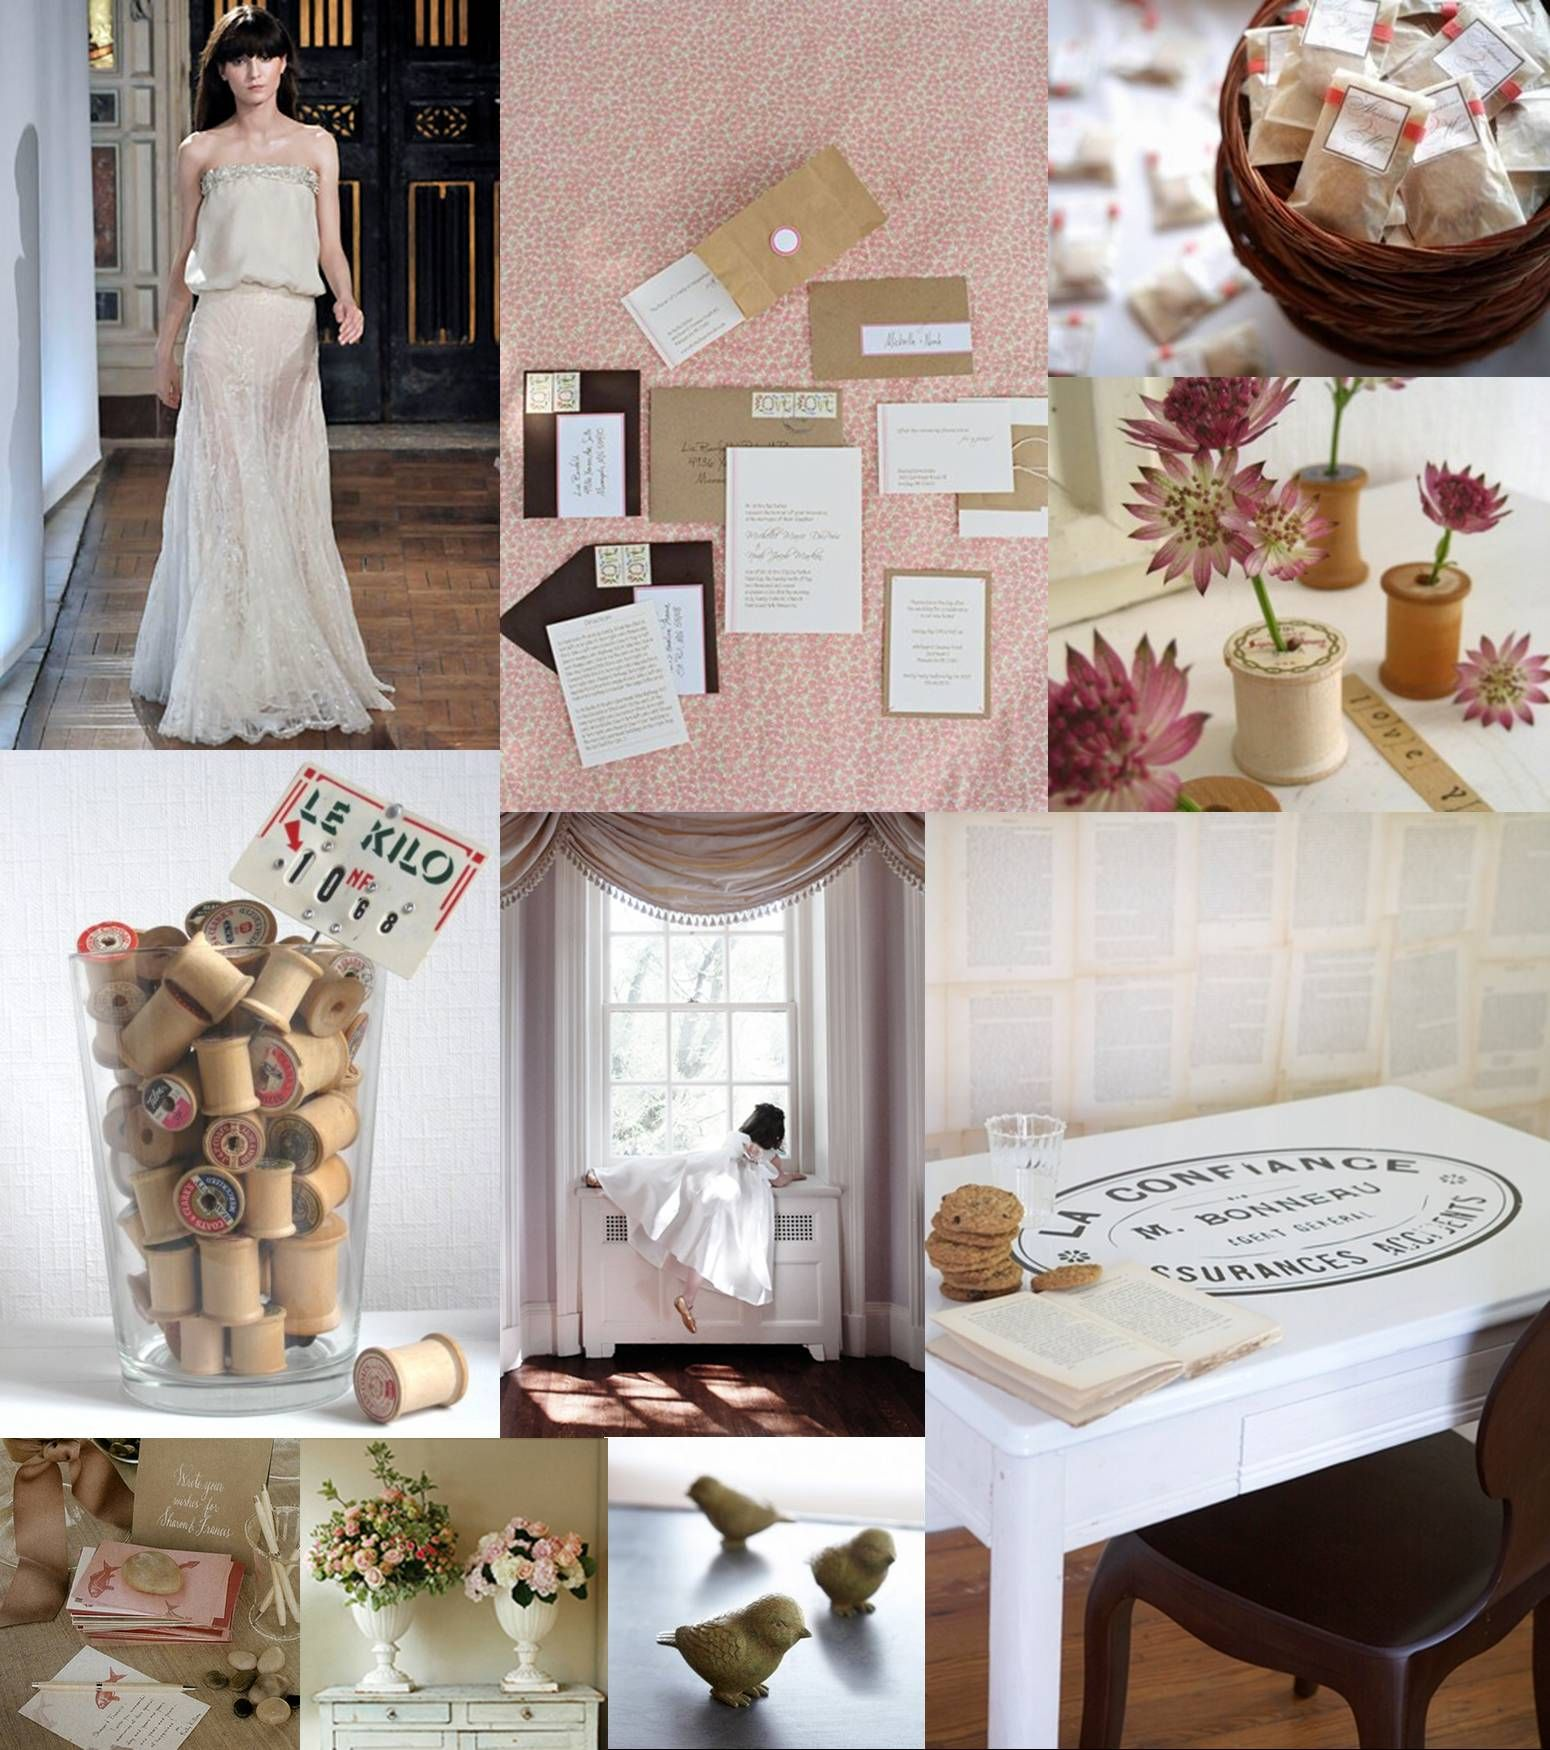 What Is Vintage Decor With Objects Makes For A Very Feminine And Sweet Wedding